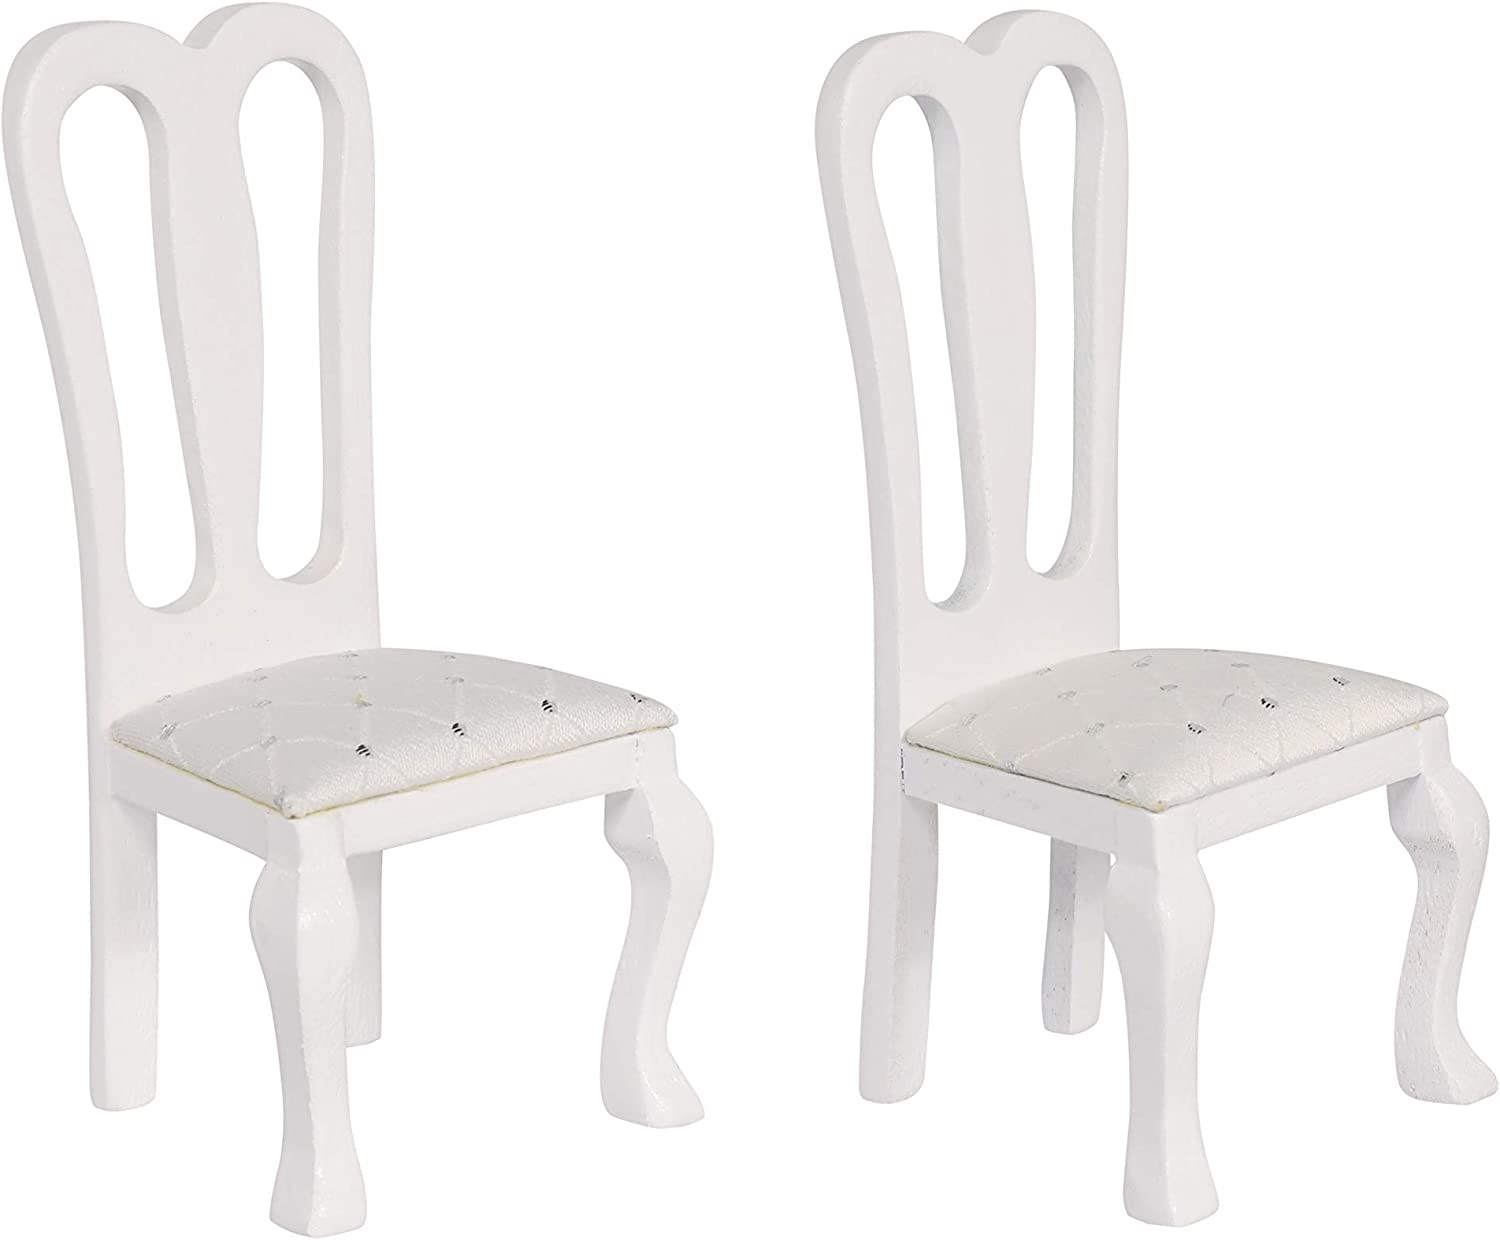 Inusitus Set of 2 Wooden Dollhouse Dining Chairs - Dolls House Furniture - 1/12 Scale (White)